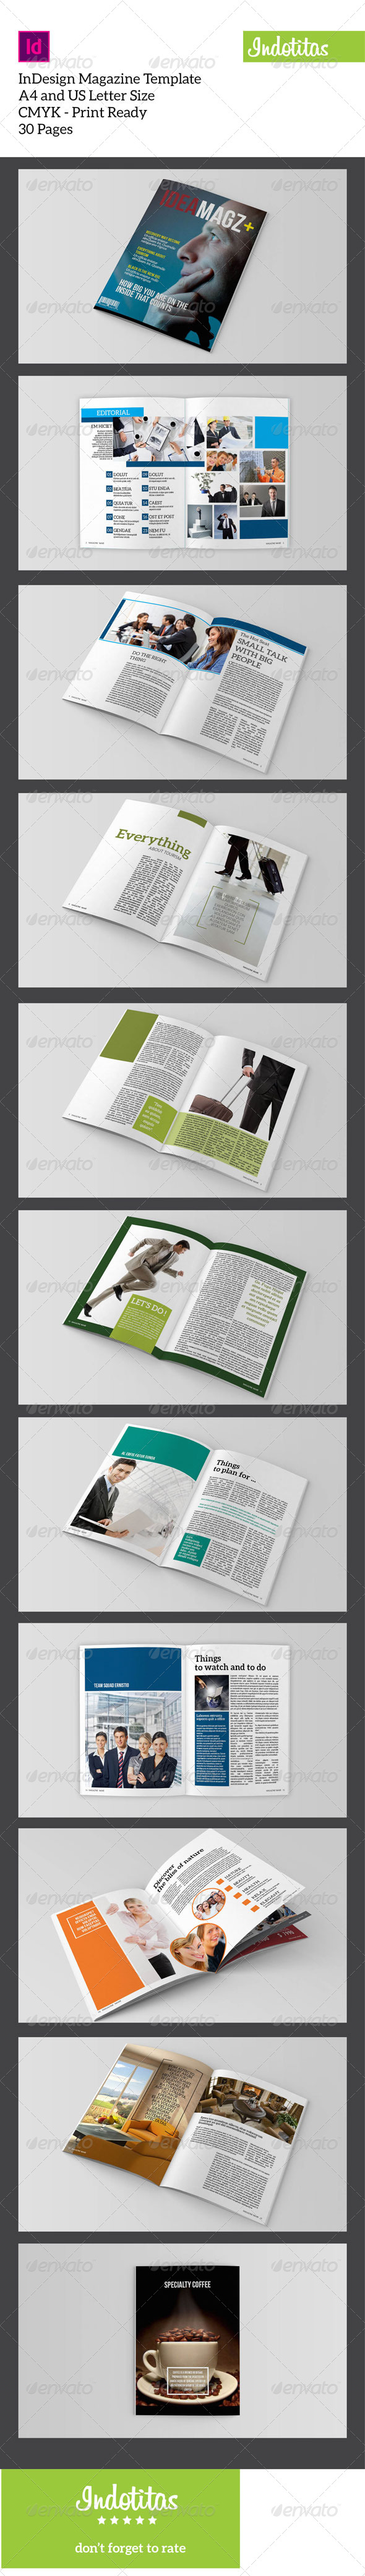 GraphicRiver InDesign Magazine Template 7767892